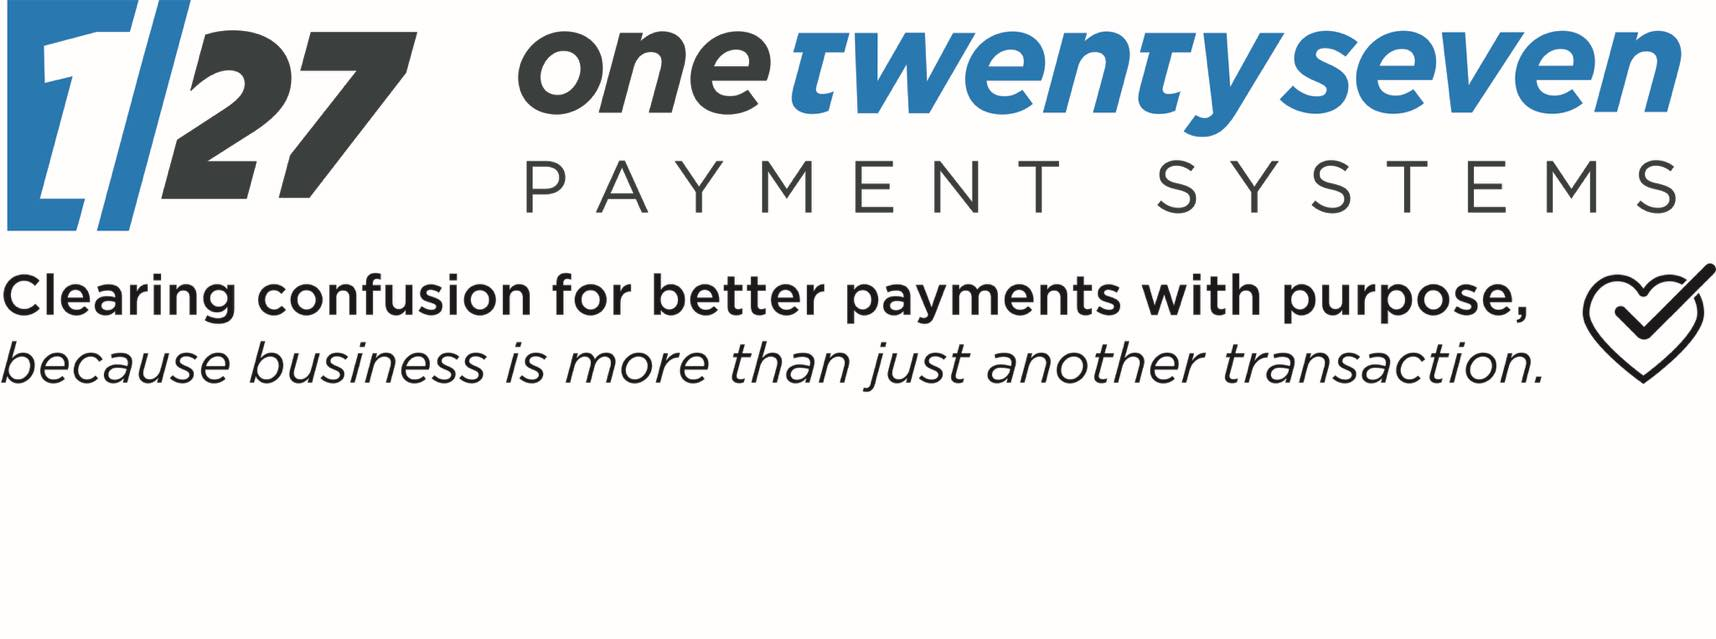 127 Payment Systems..jpg